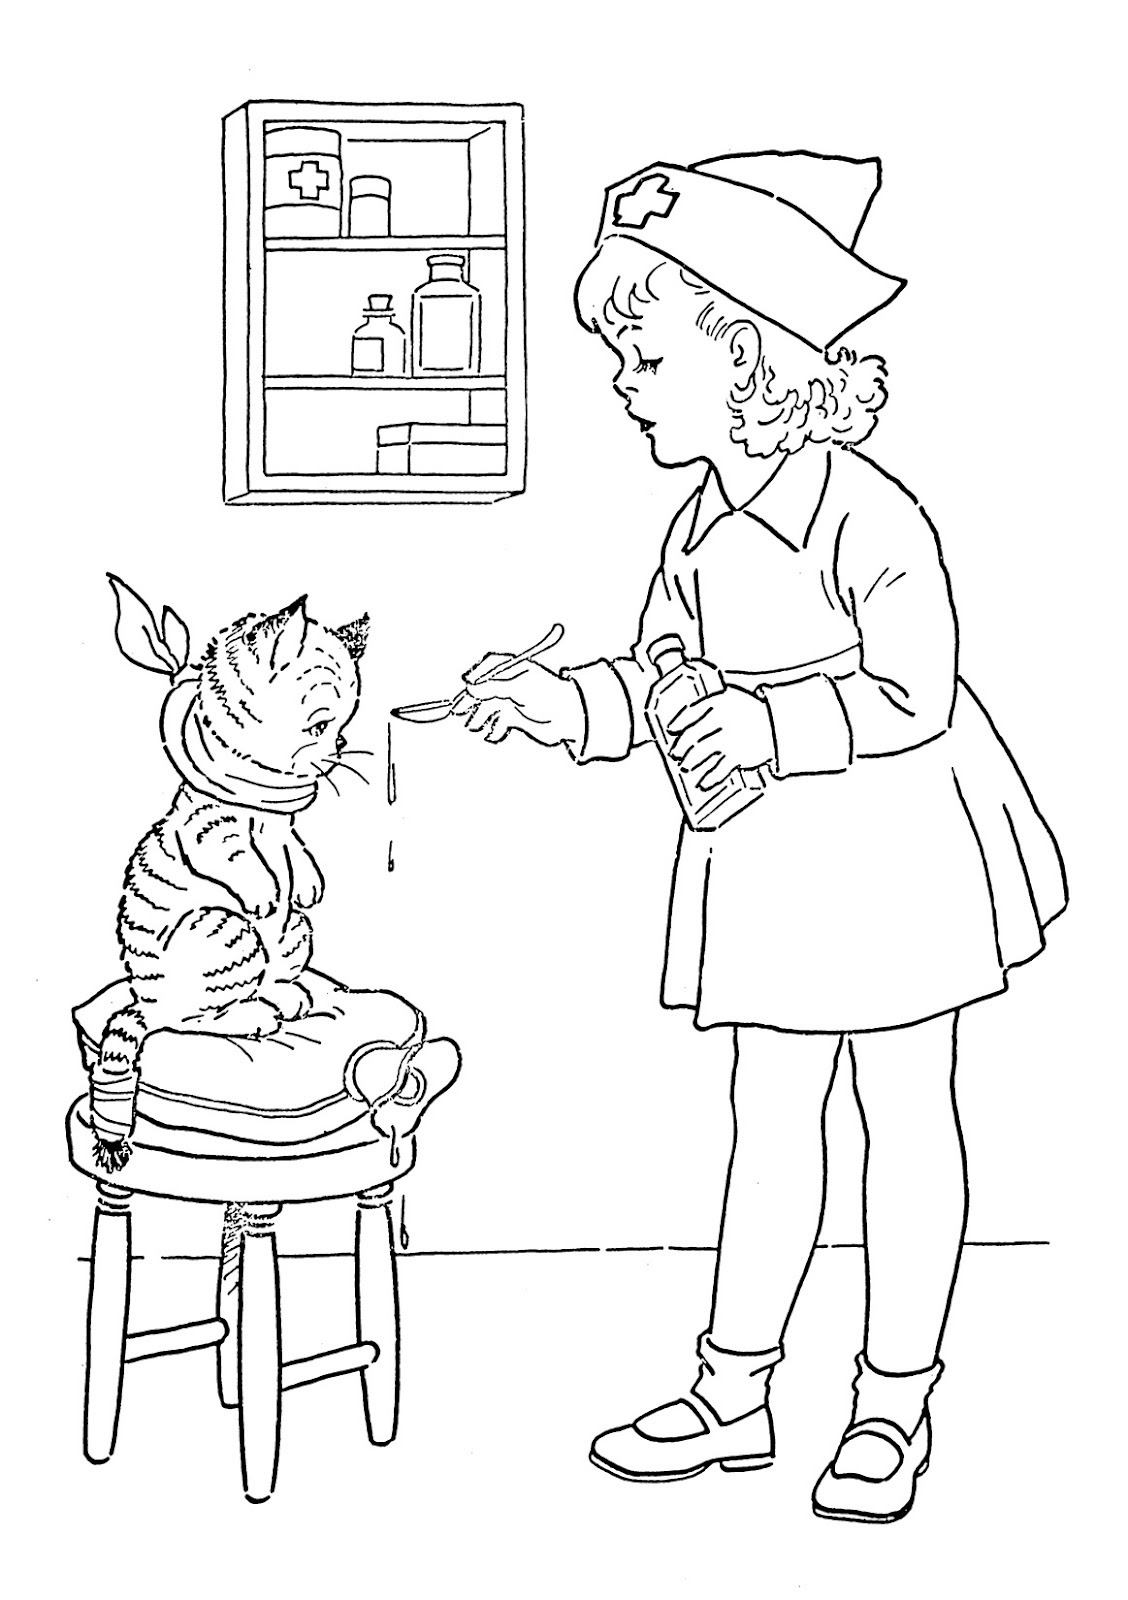 Nurse Coloring Pages Best Coloring